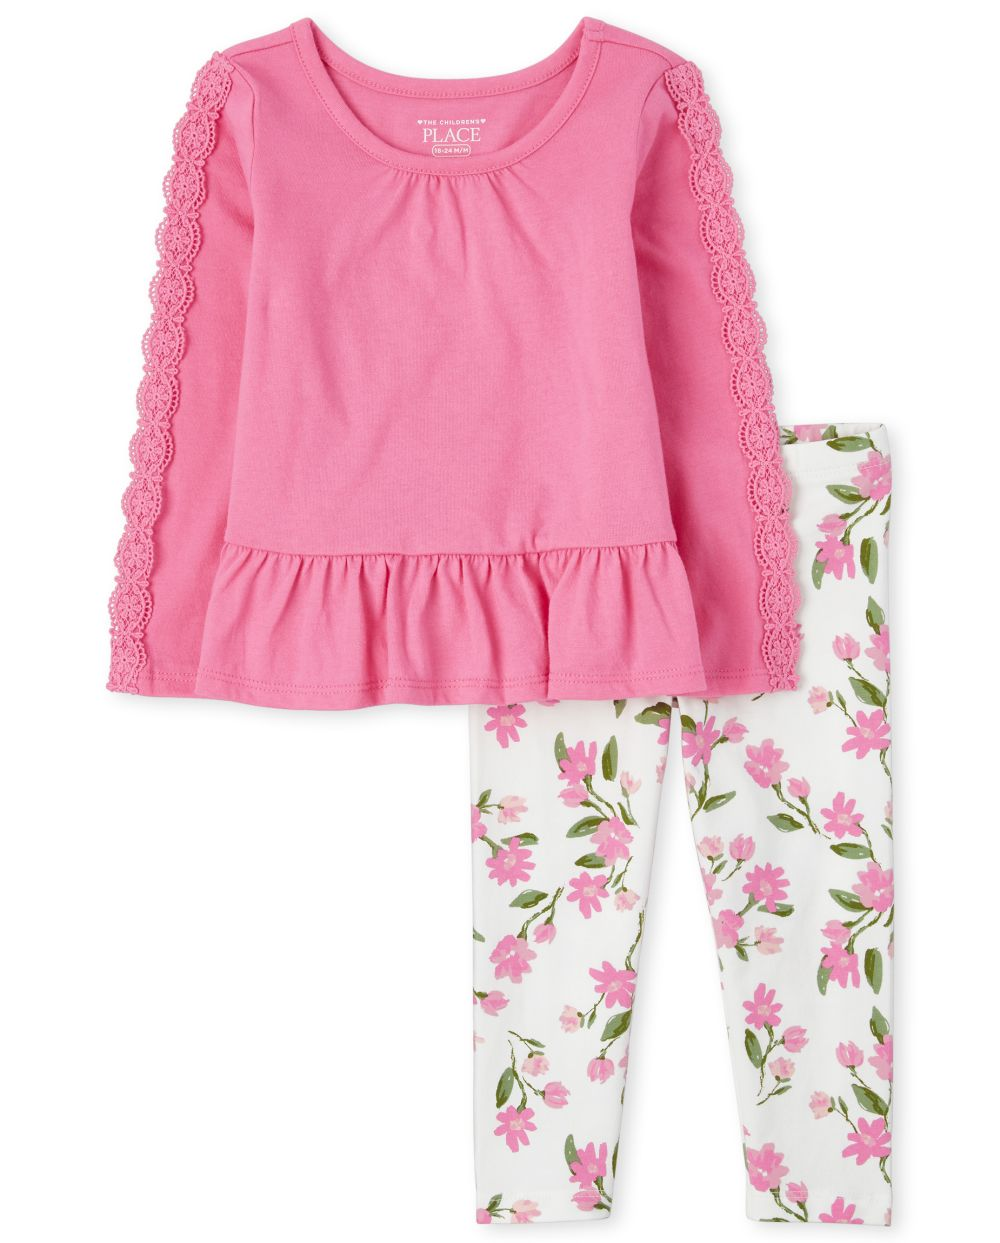 Toddler Floral Peplum 2-Piece Set - Pink